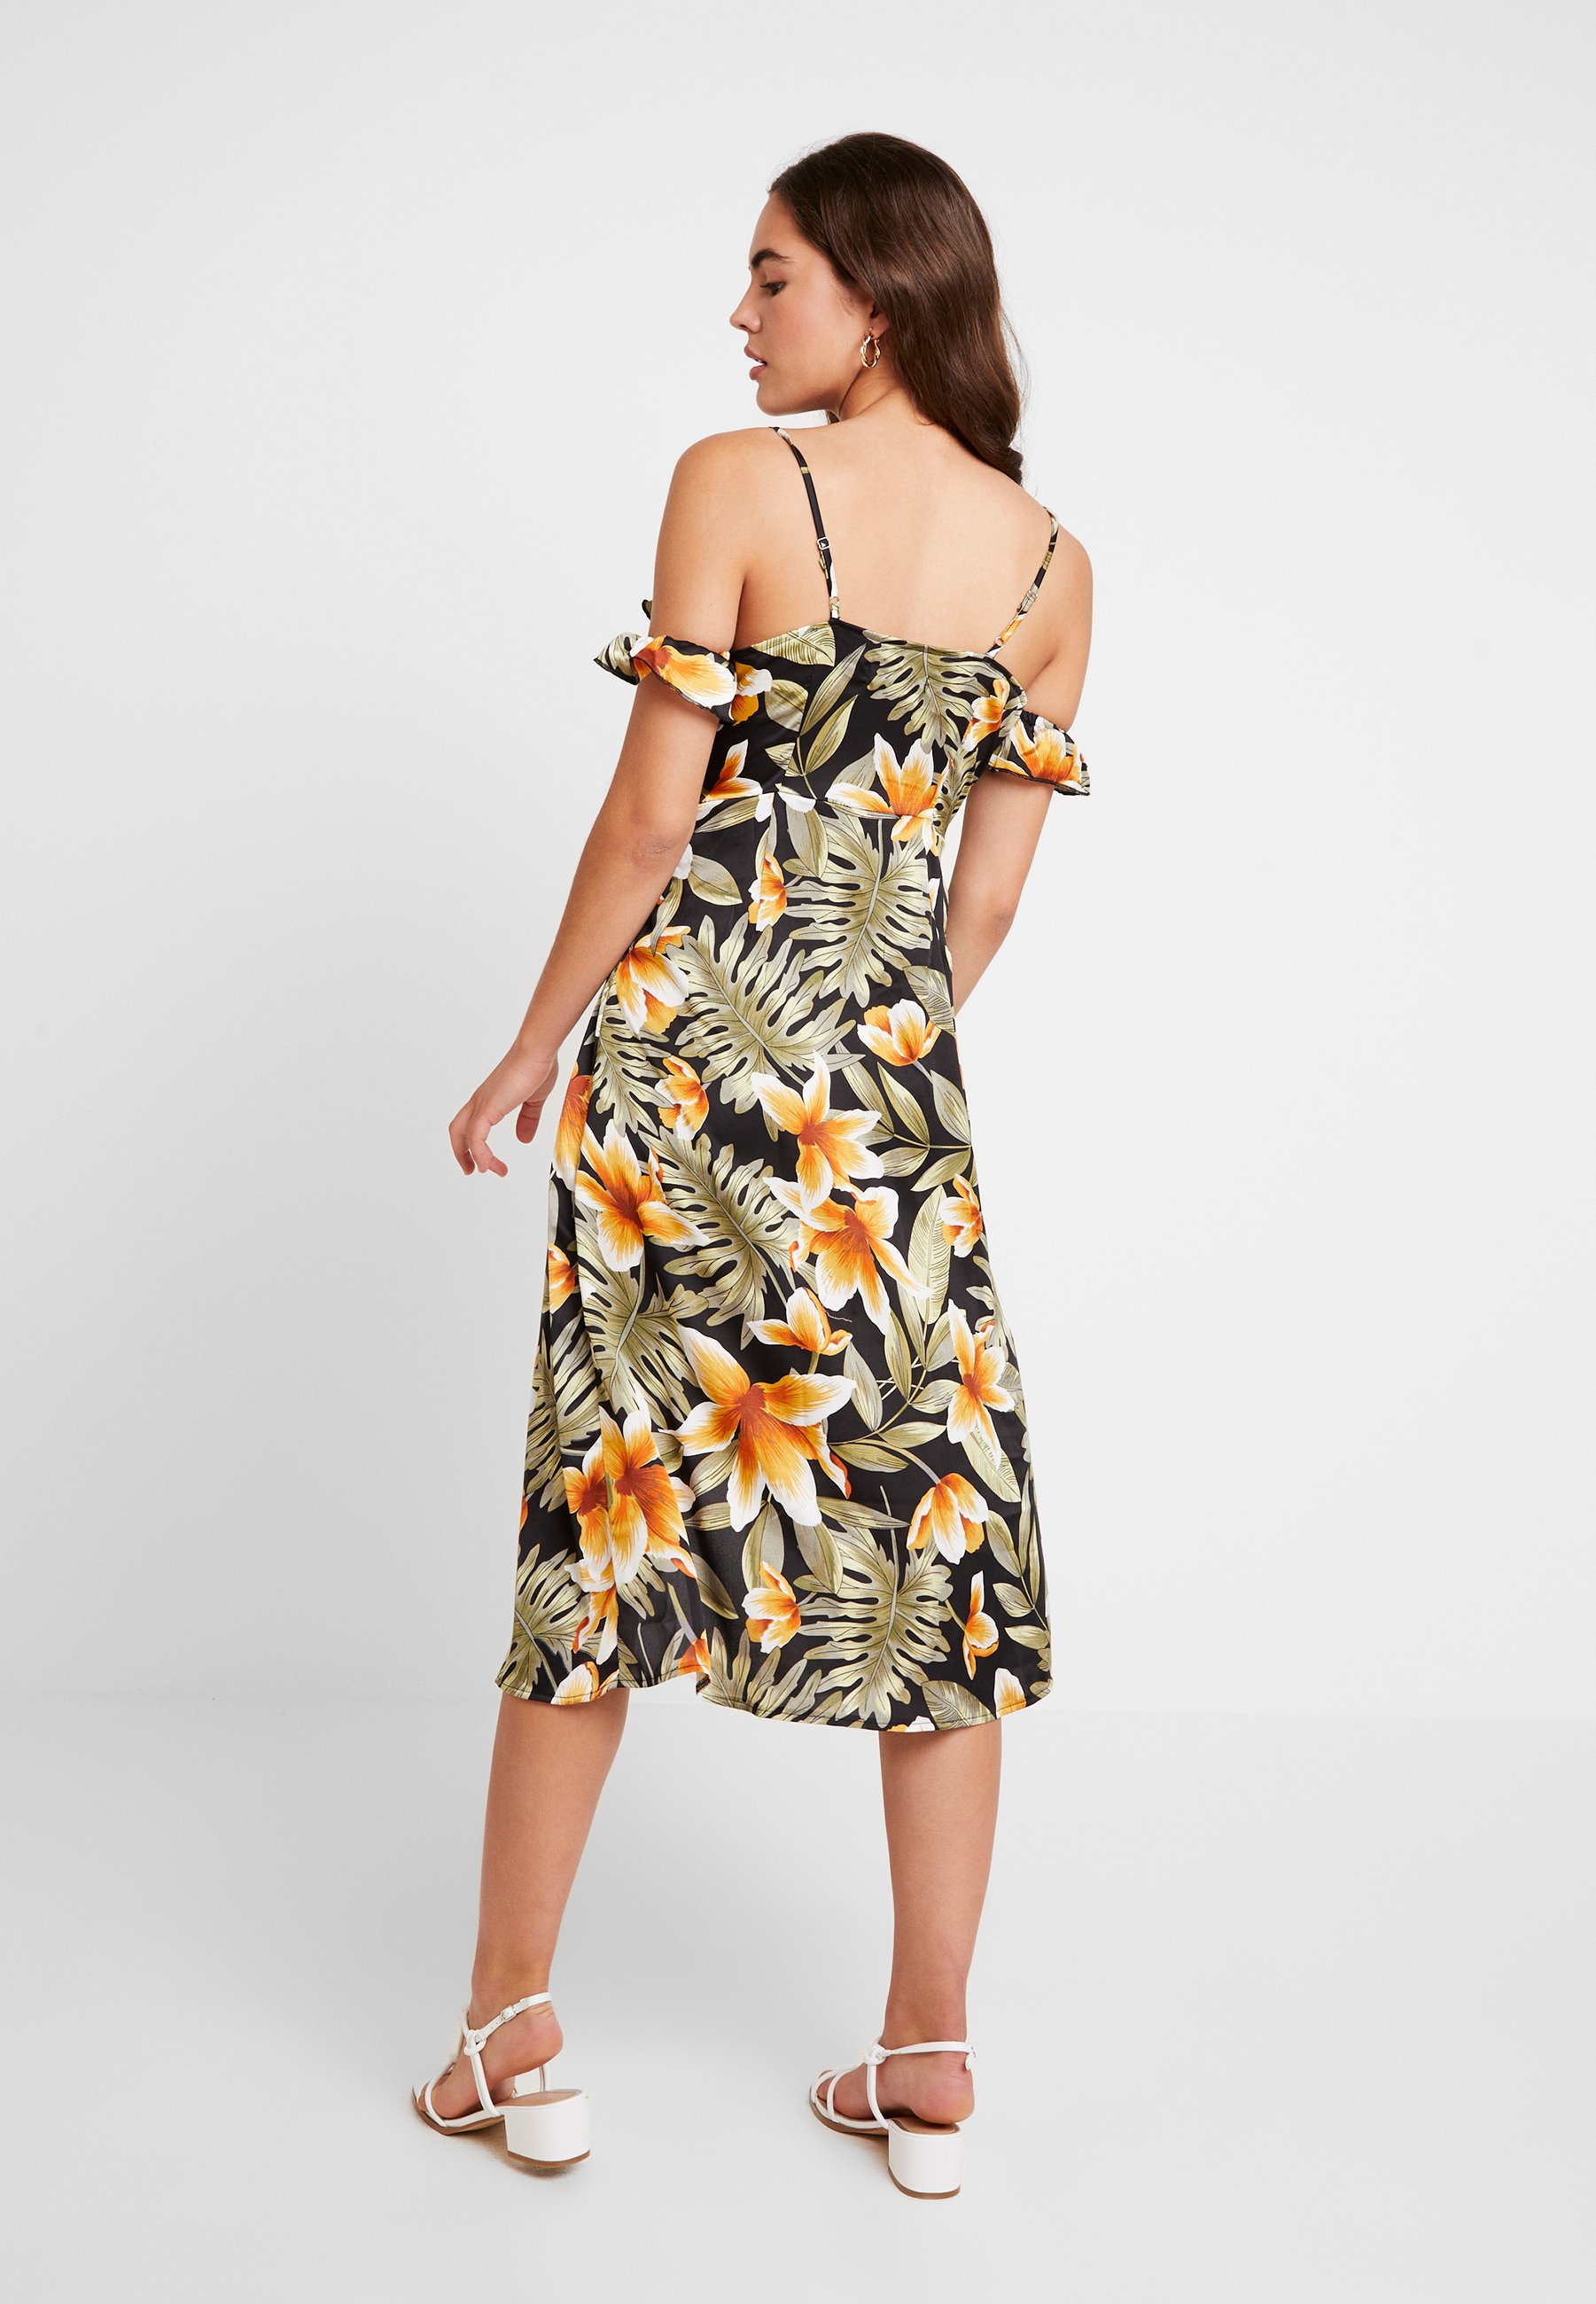 Missguided Midi FloralRobe Frill Dress Shoulder Black Cold Tea D'été gyf7Yb6v